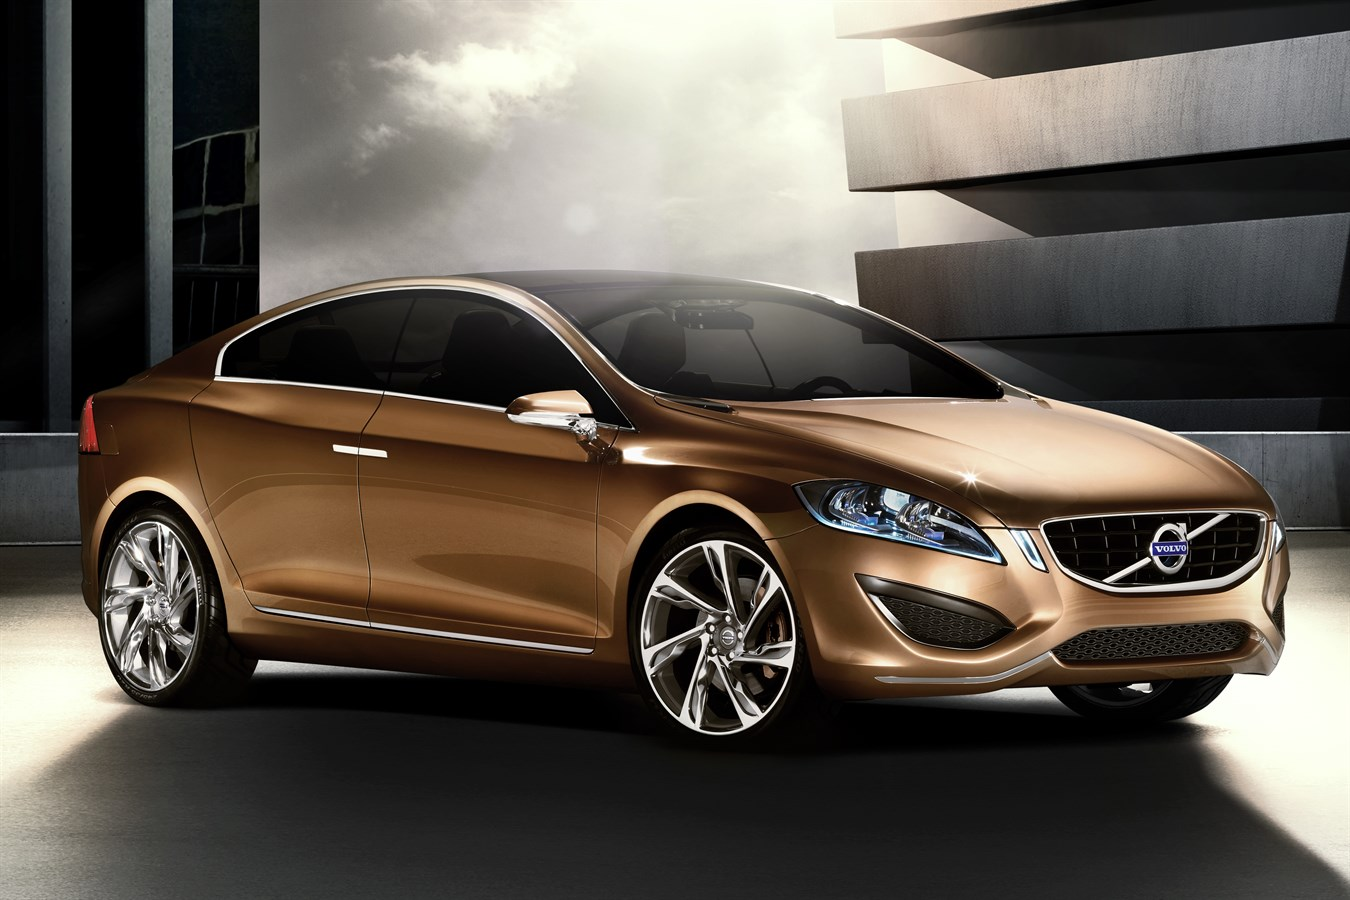 Short Version An Early Christmas Present From Volvo Cars A Glimpse Of The Next Generation S60 Car Usa Newsroom